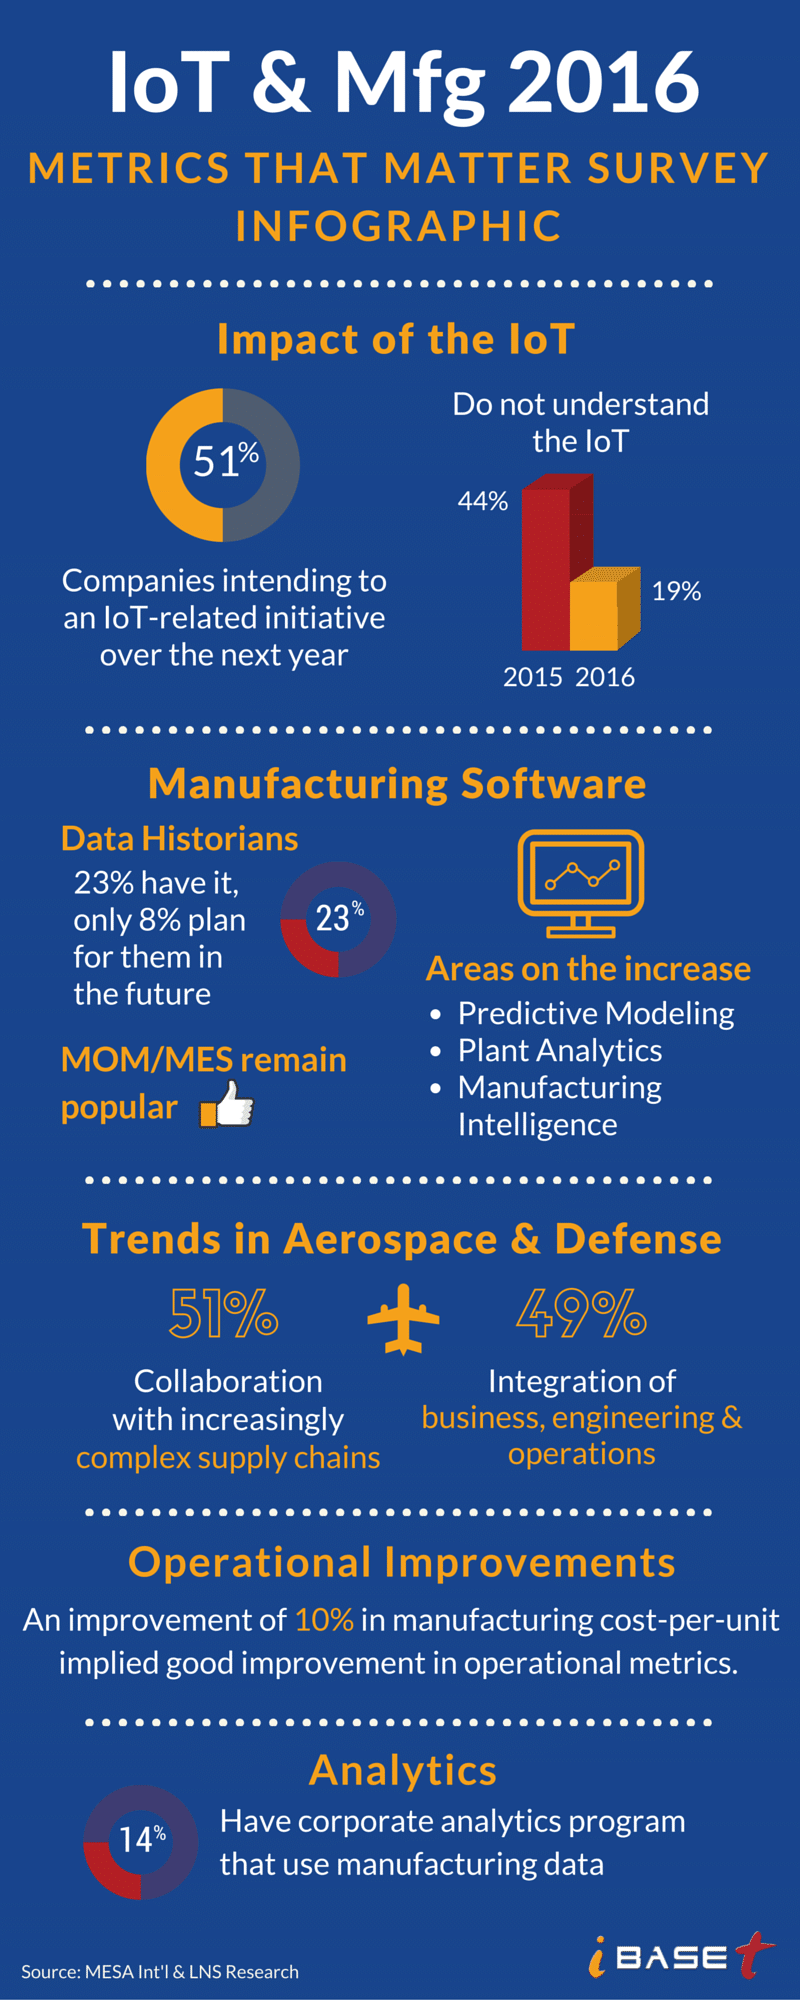 Key Findings from an IoT and Manufacturing Survey from MESA & LNS, 2016 [infographic]